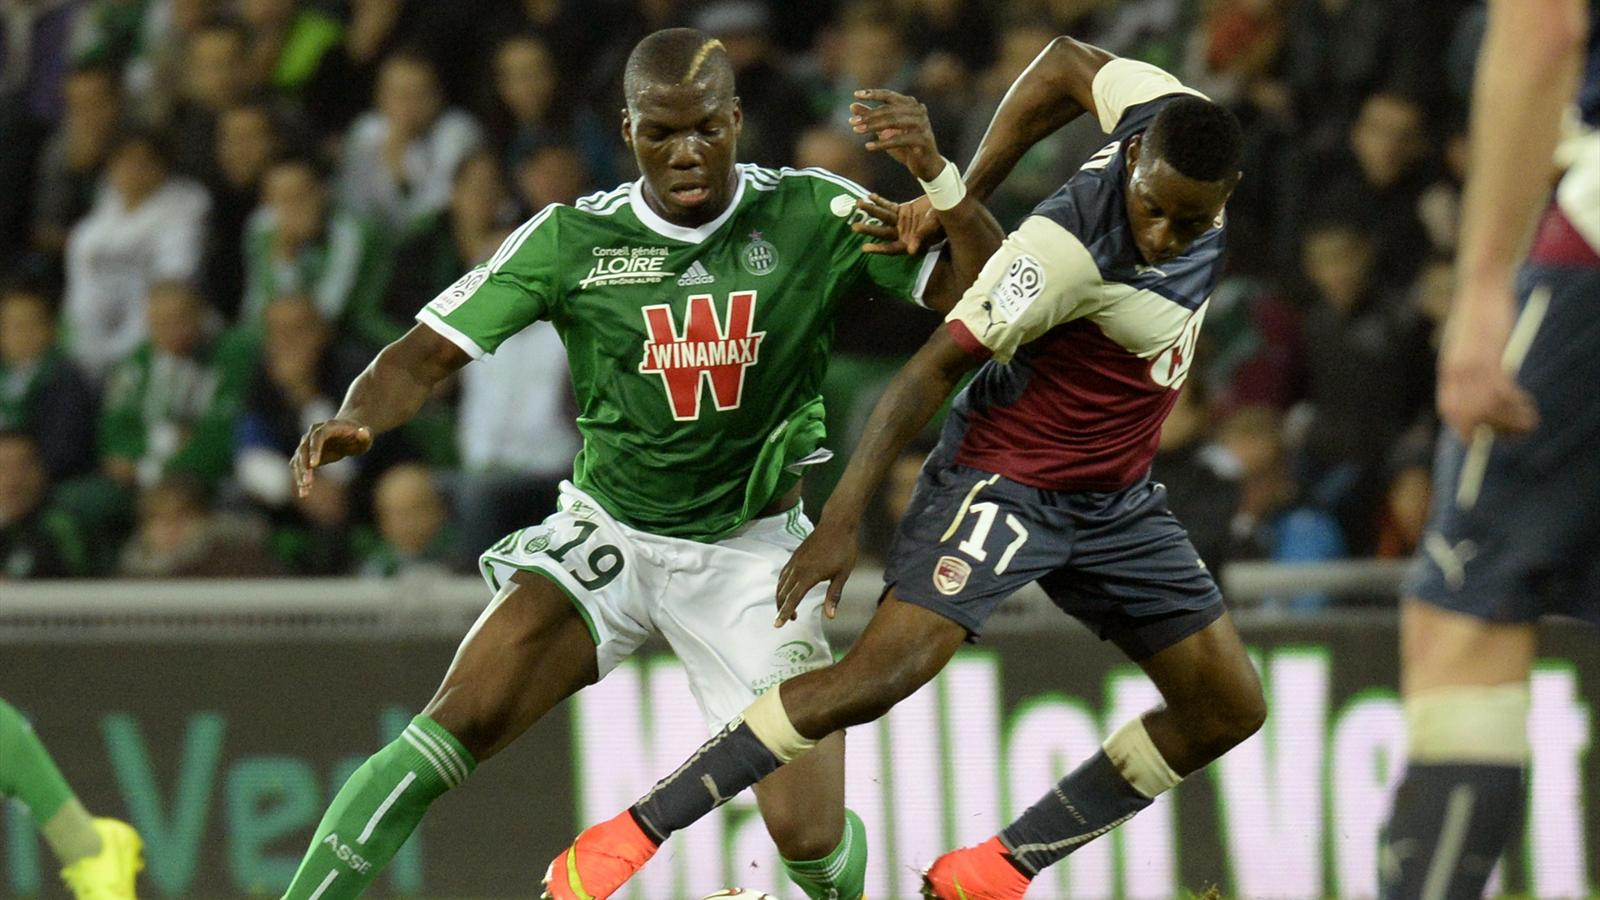 Video: Saint Etienne vs Bordeaux